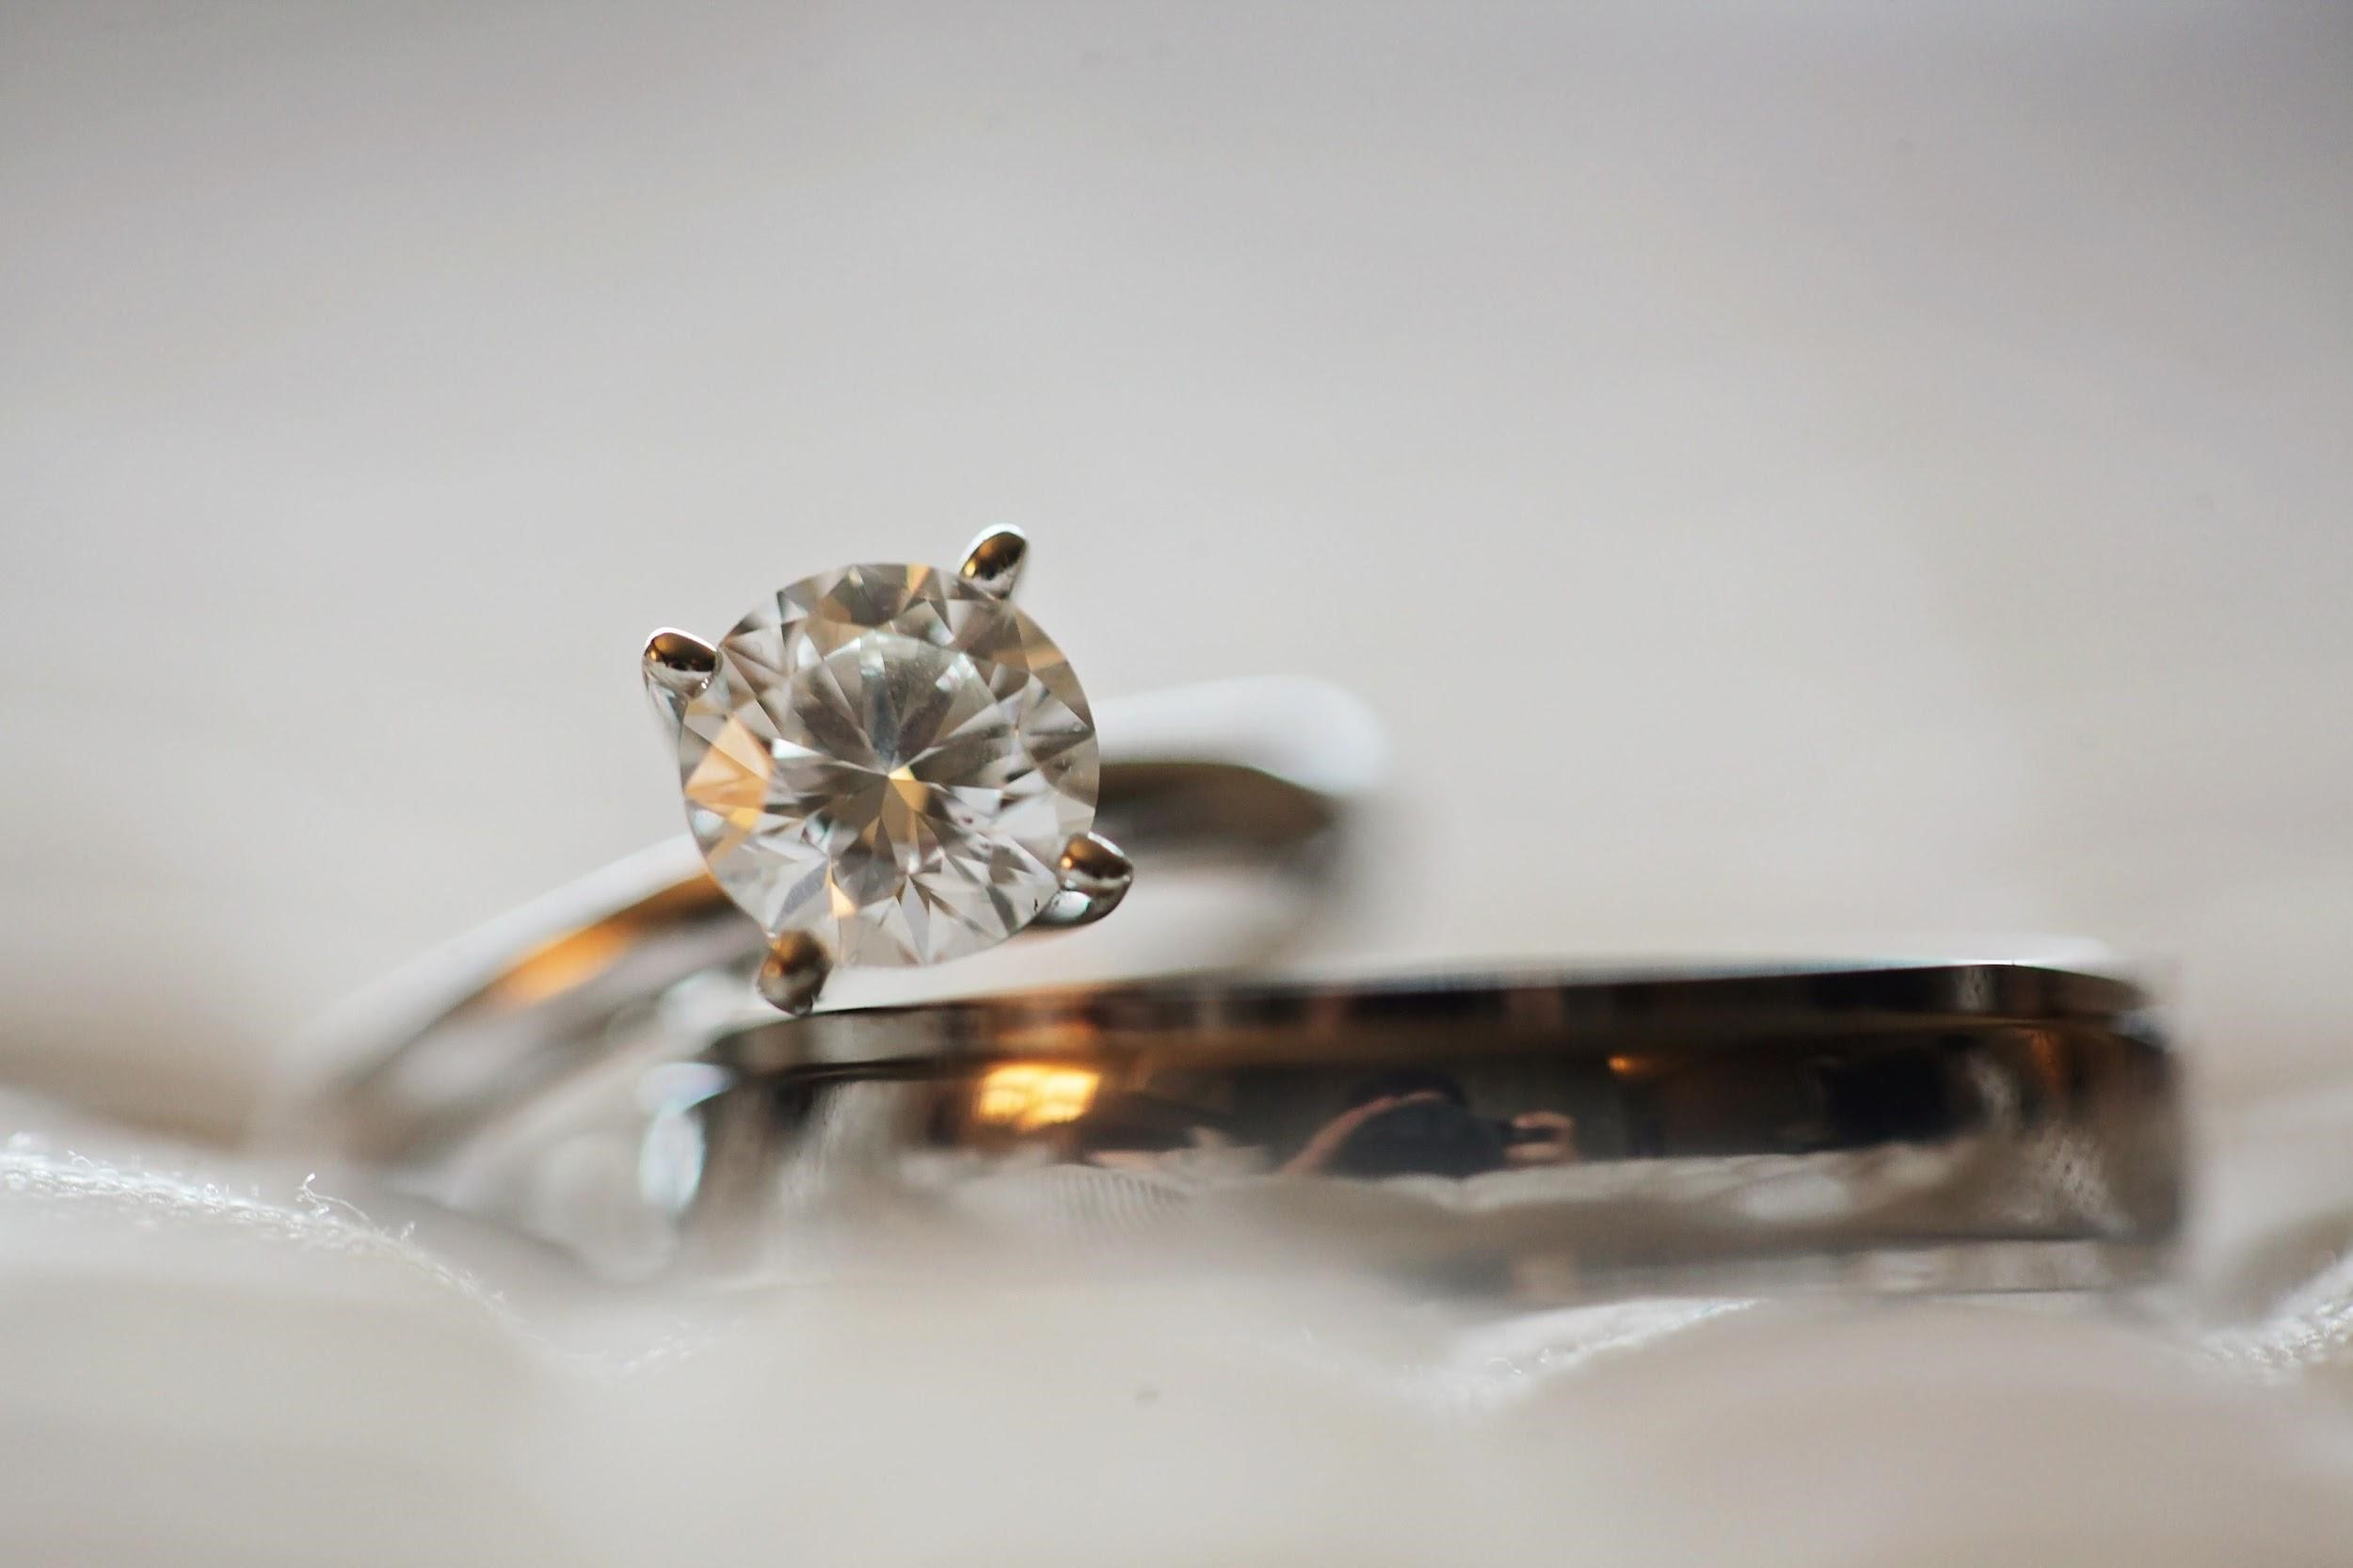 Ask The Experts: Guide To Diamond Engagement Ring Shopping